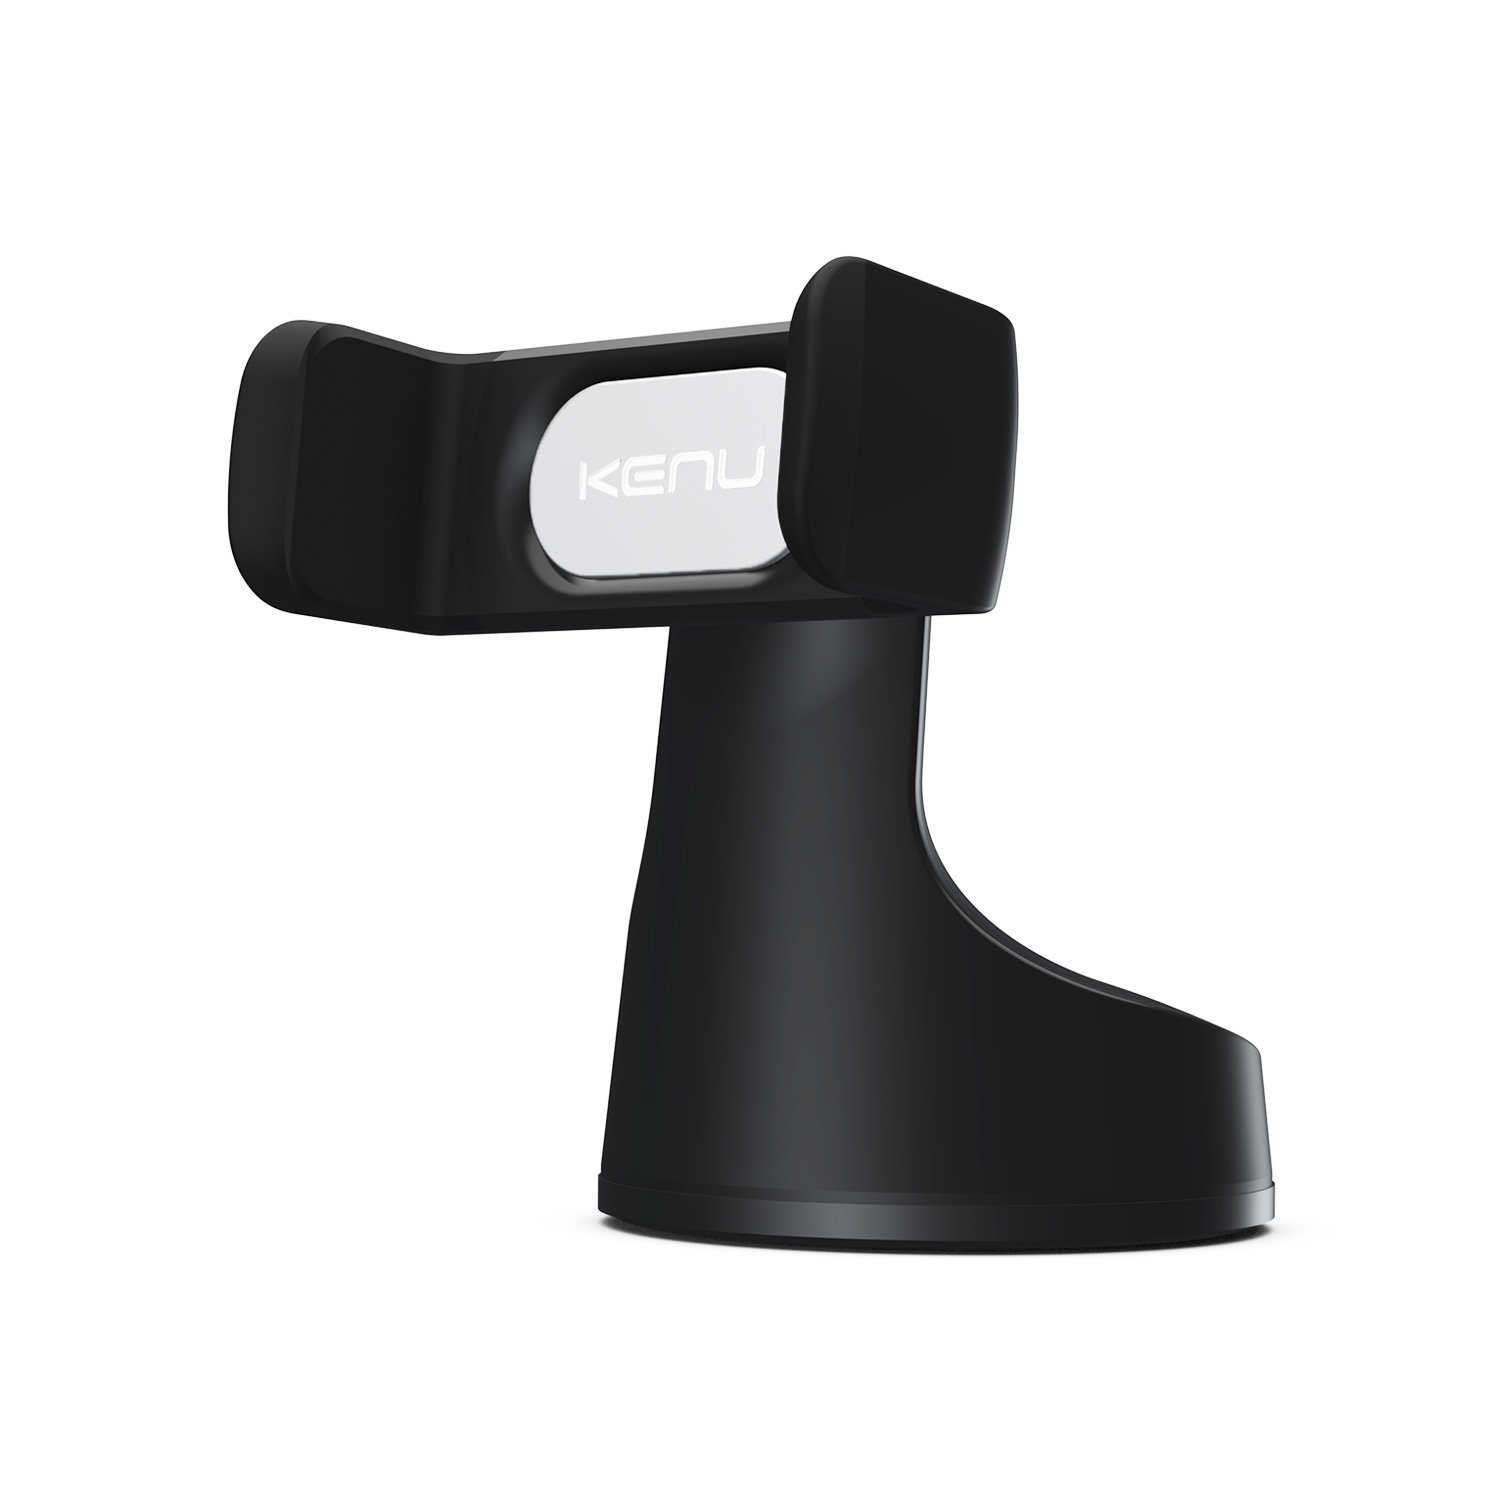 Kenu Airbase Pro   Premium Dashboard Car Mount   Android Car Phone Mount and iPhone Car Holder, Car Accessories for iPhone X, 8/8 Plus, 7/7 Plus, 6s/6s Plus, 6/6 Plus, Samsung Galaxy Phone Stand Black